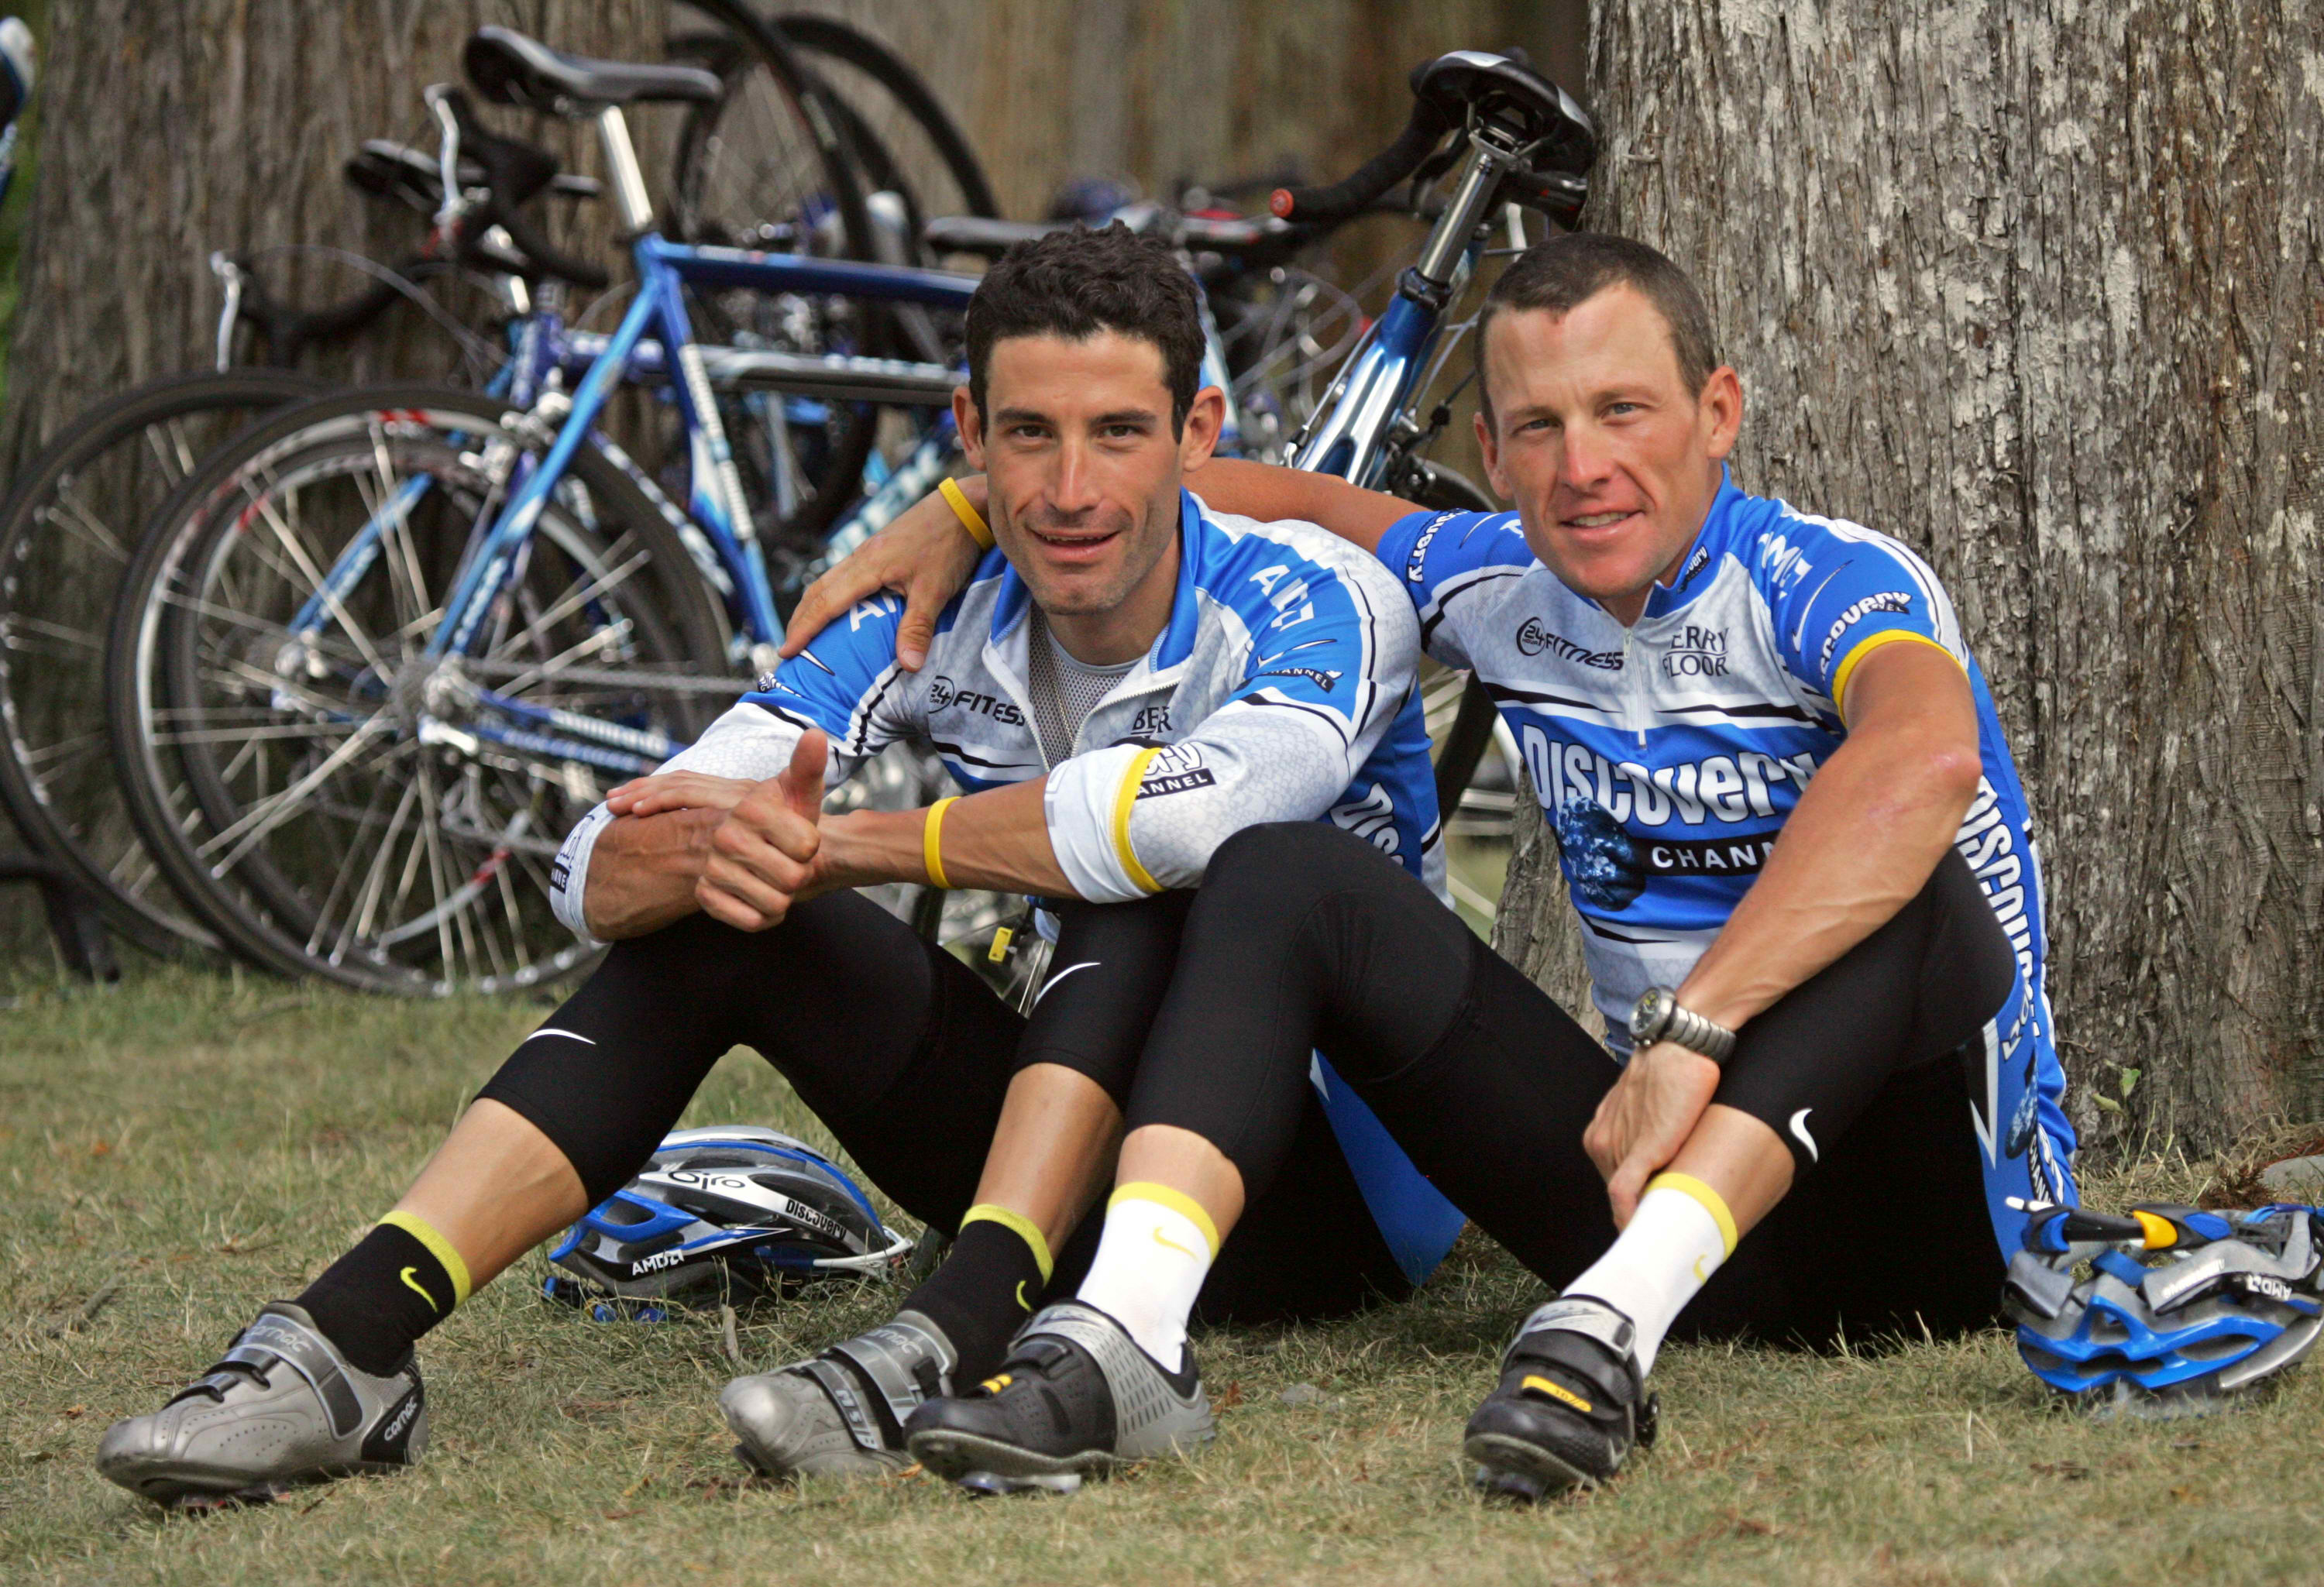 George Hincapie admits to doping, giving information on Armstrong ...